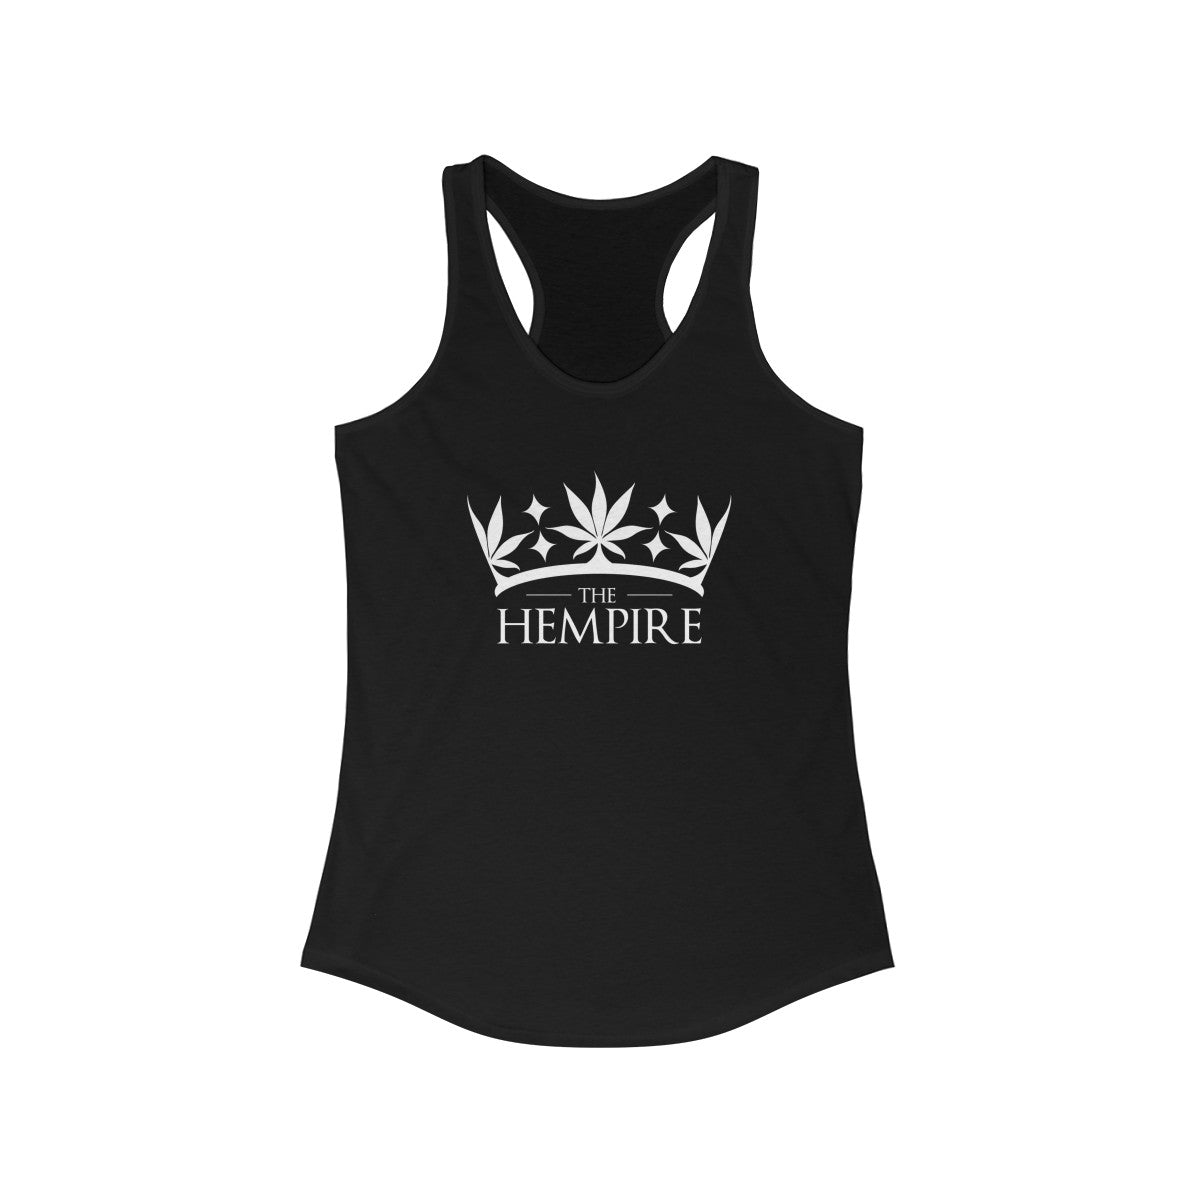 FITTED TANK + HEMPIRE LOGO